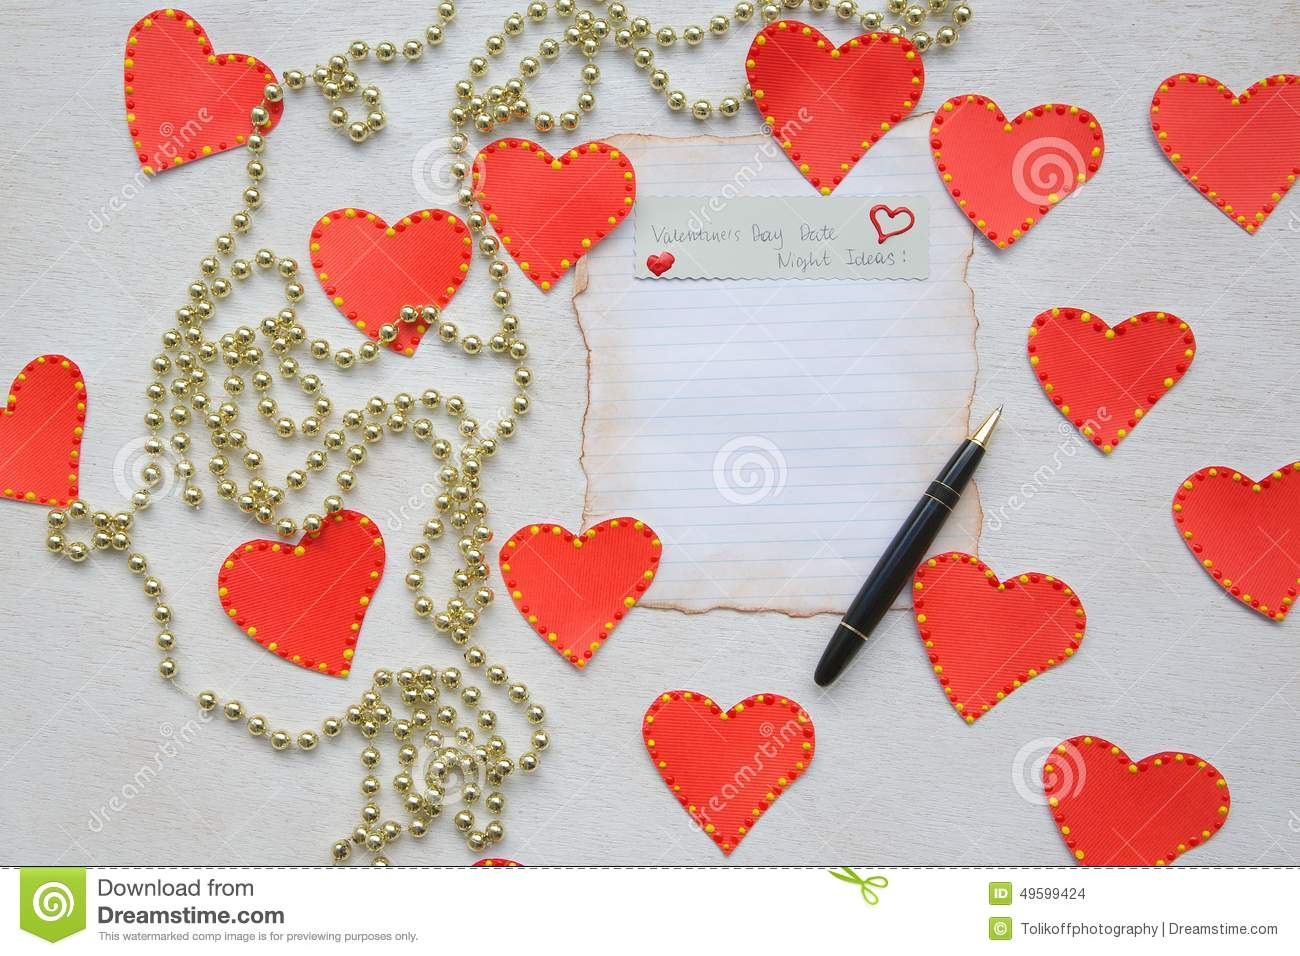 Valentines Day Date Night Ideas Stock Photo Image Of Single